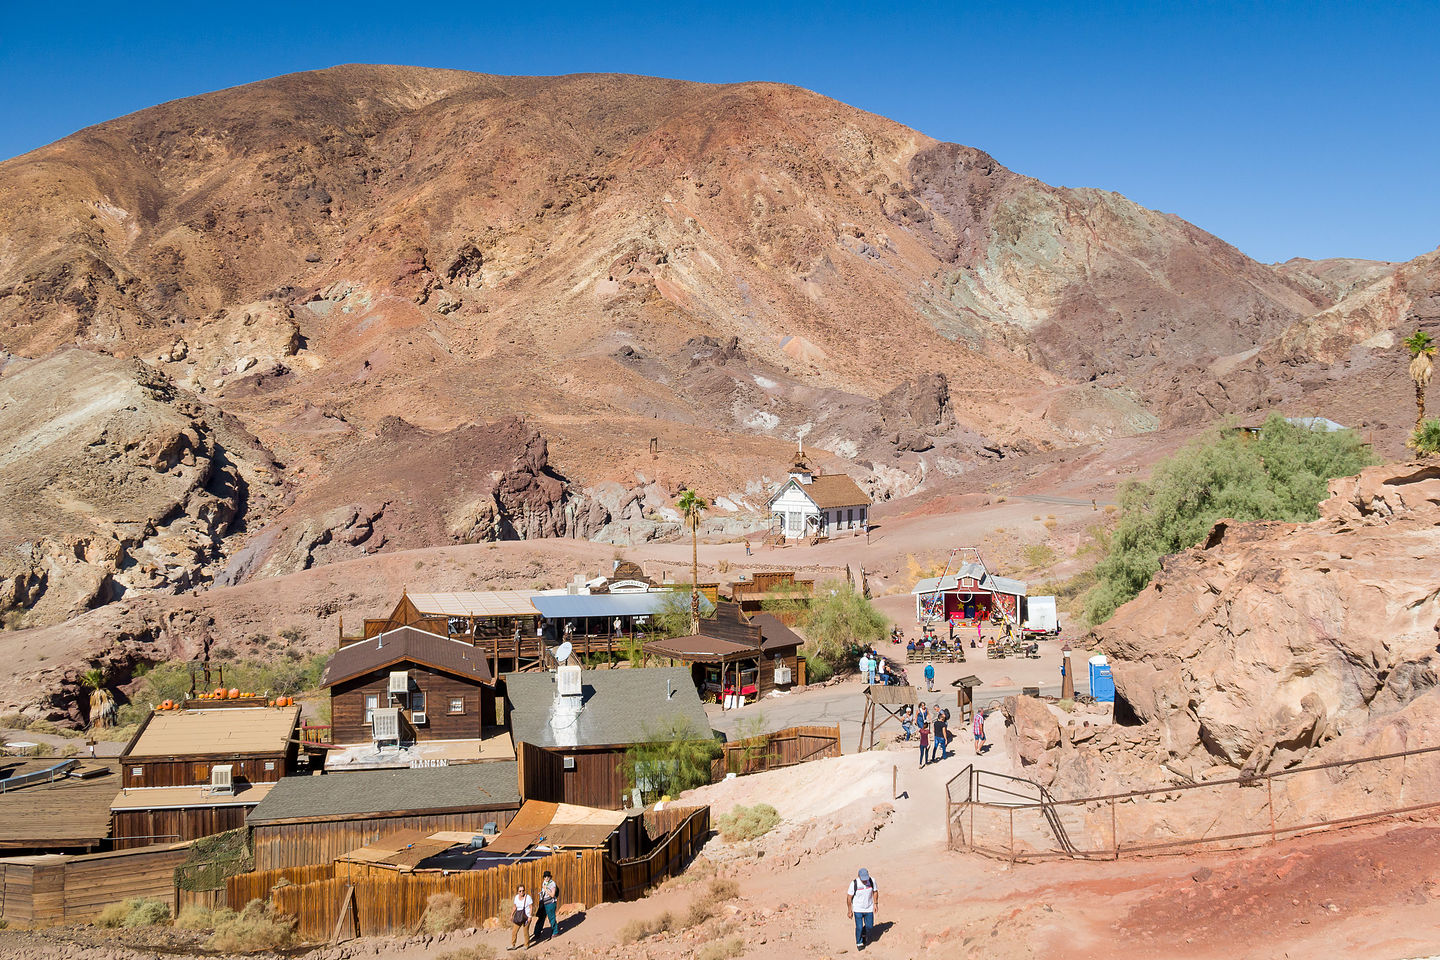 Looking down on Calico Ghost Town